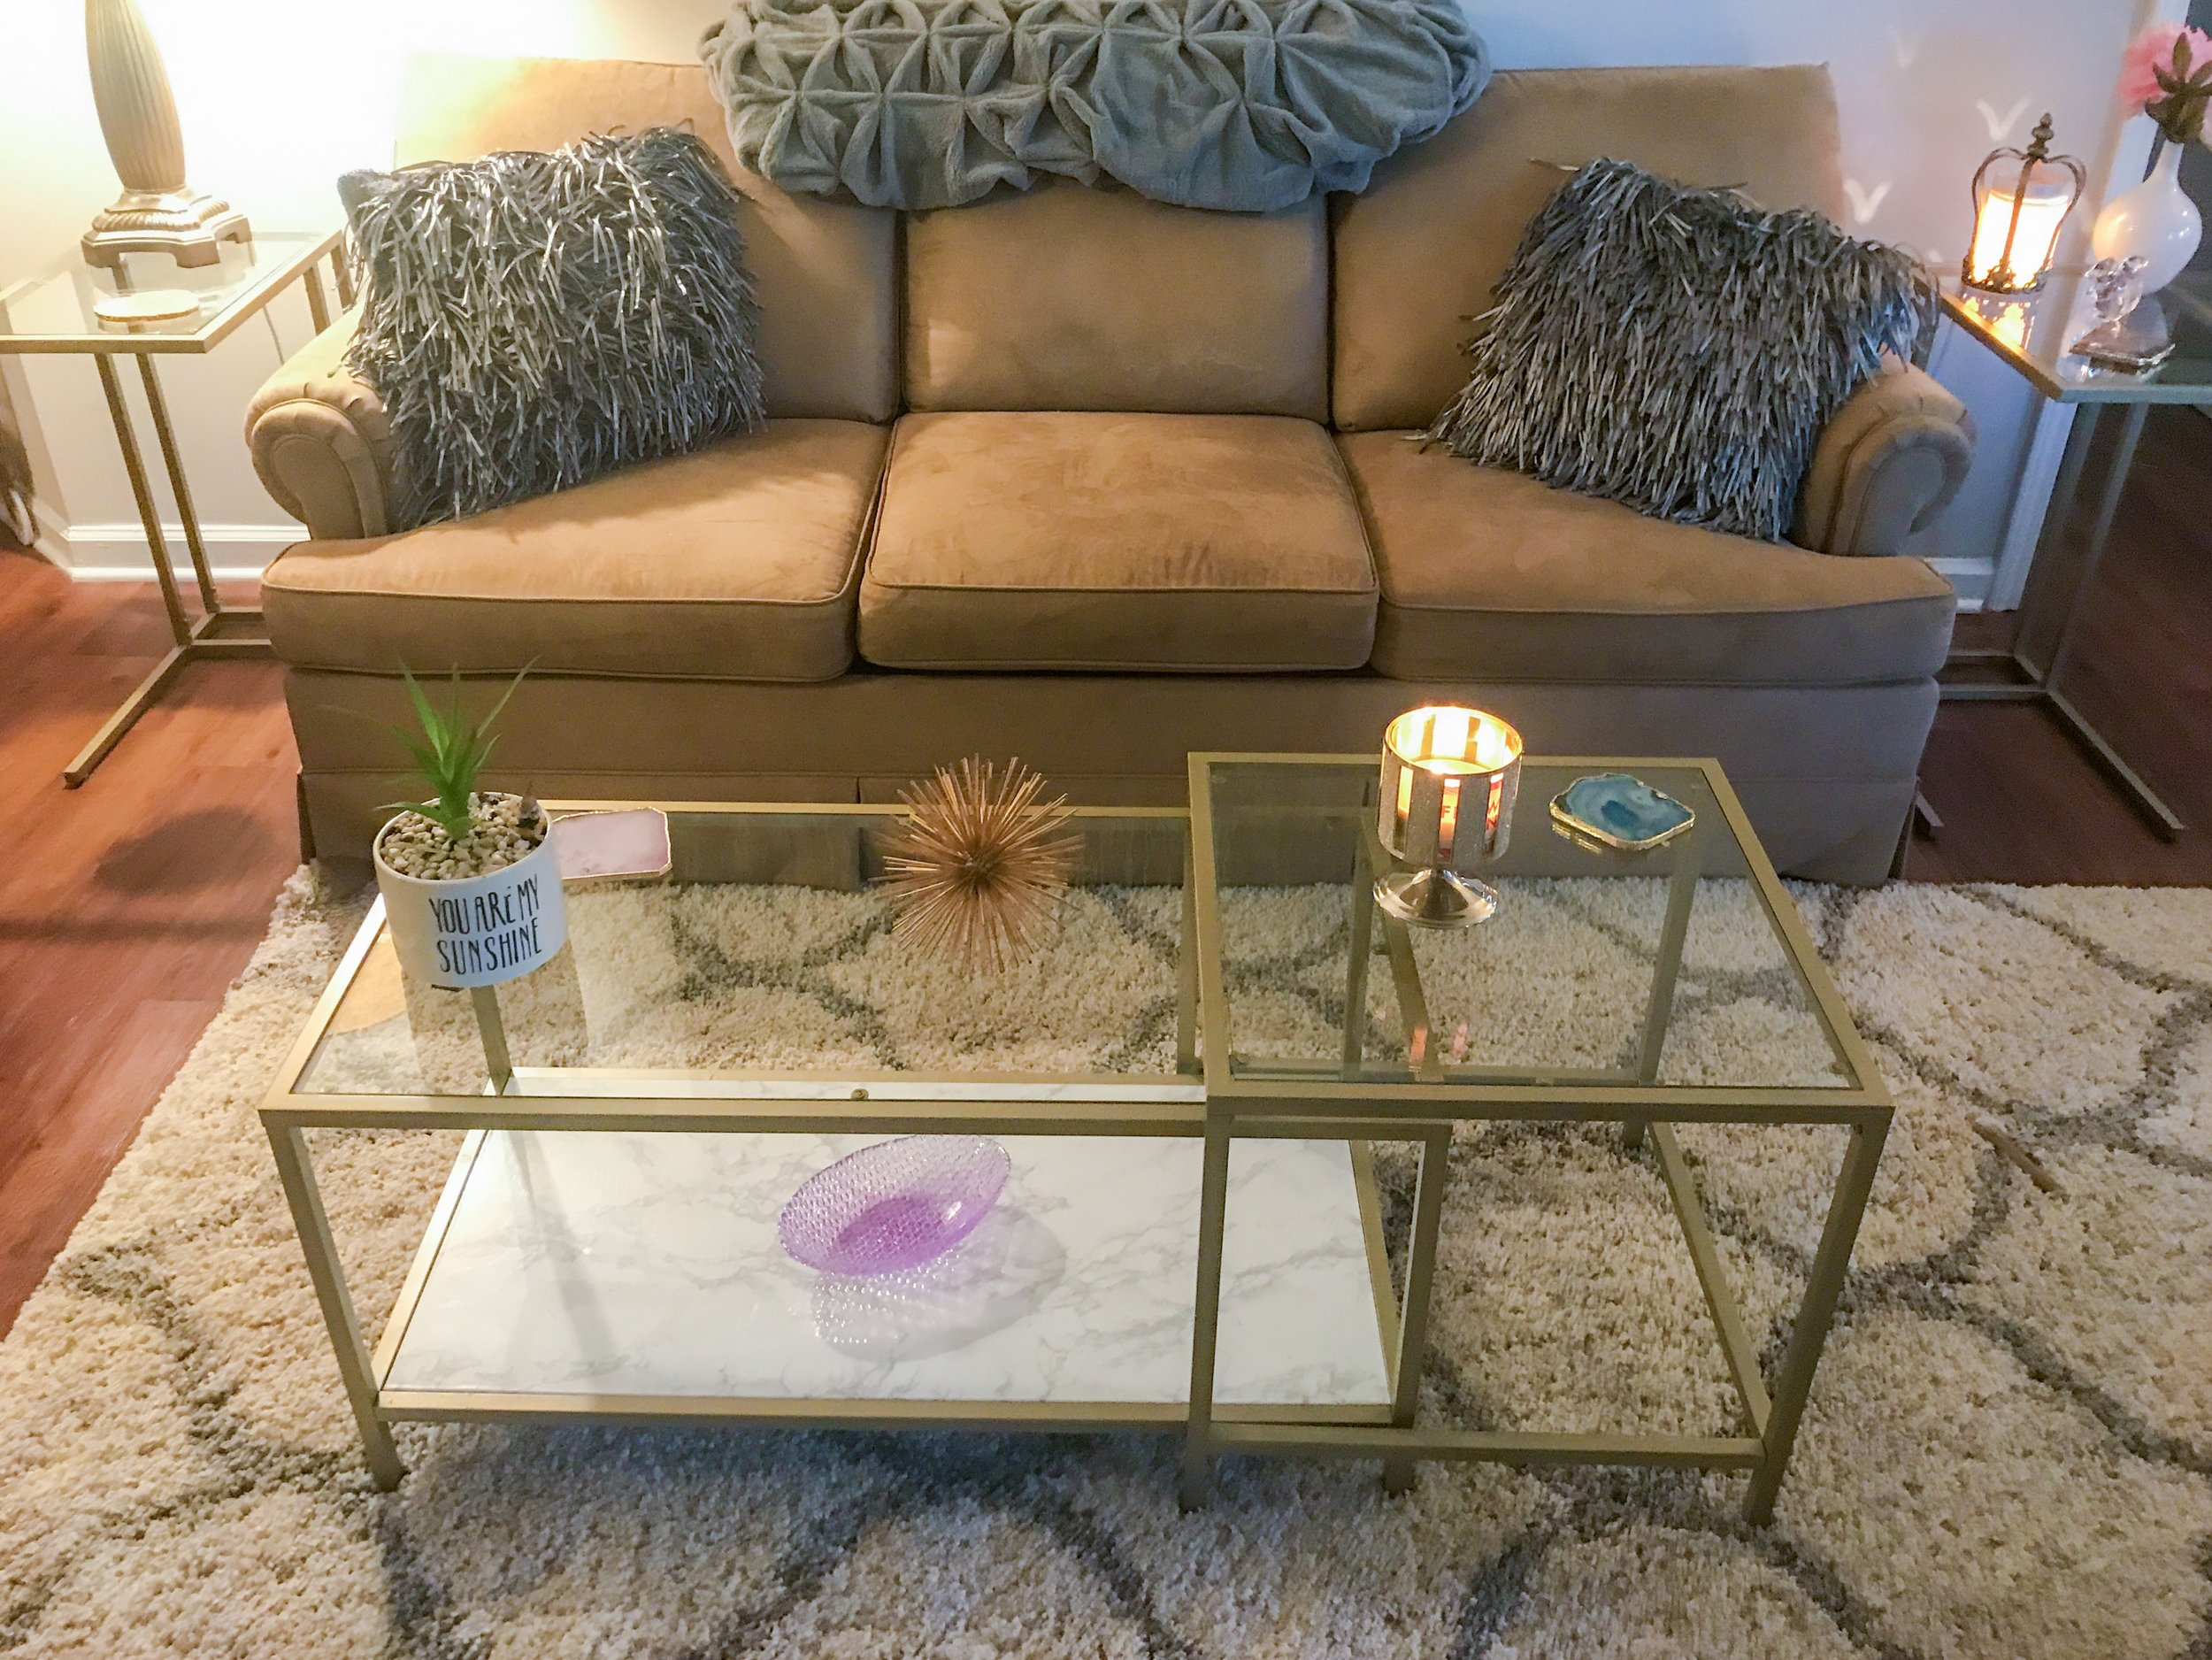 My favorite thing about my apartment is my  living room furniture  set. You may notice it looks like my wet bar and thats because I DIYed all of my living room furniture the same way! I spray painted the border edges and added  marble contact paper  to the bottom. Everyone is so surprised when I tell them it's not real marble!